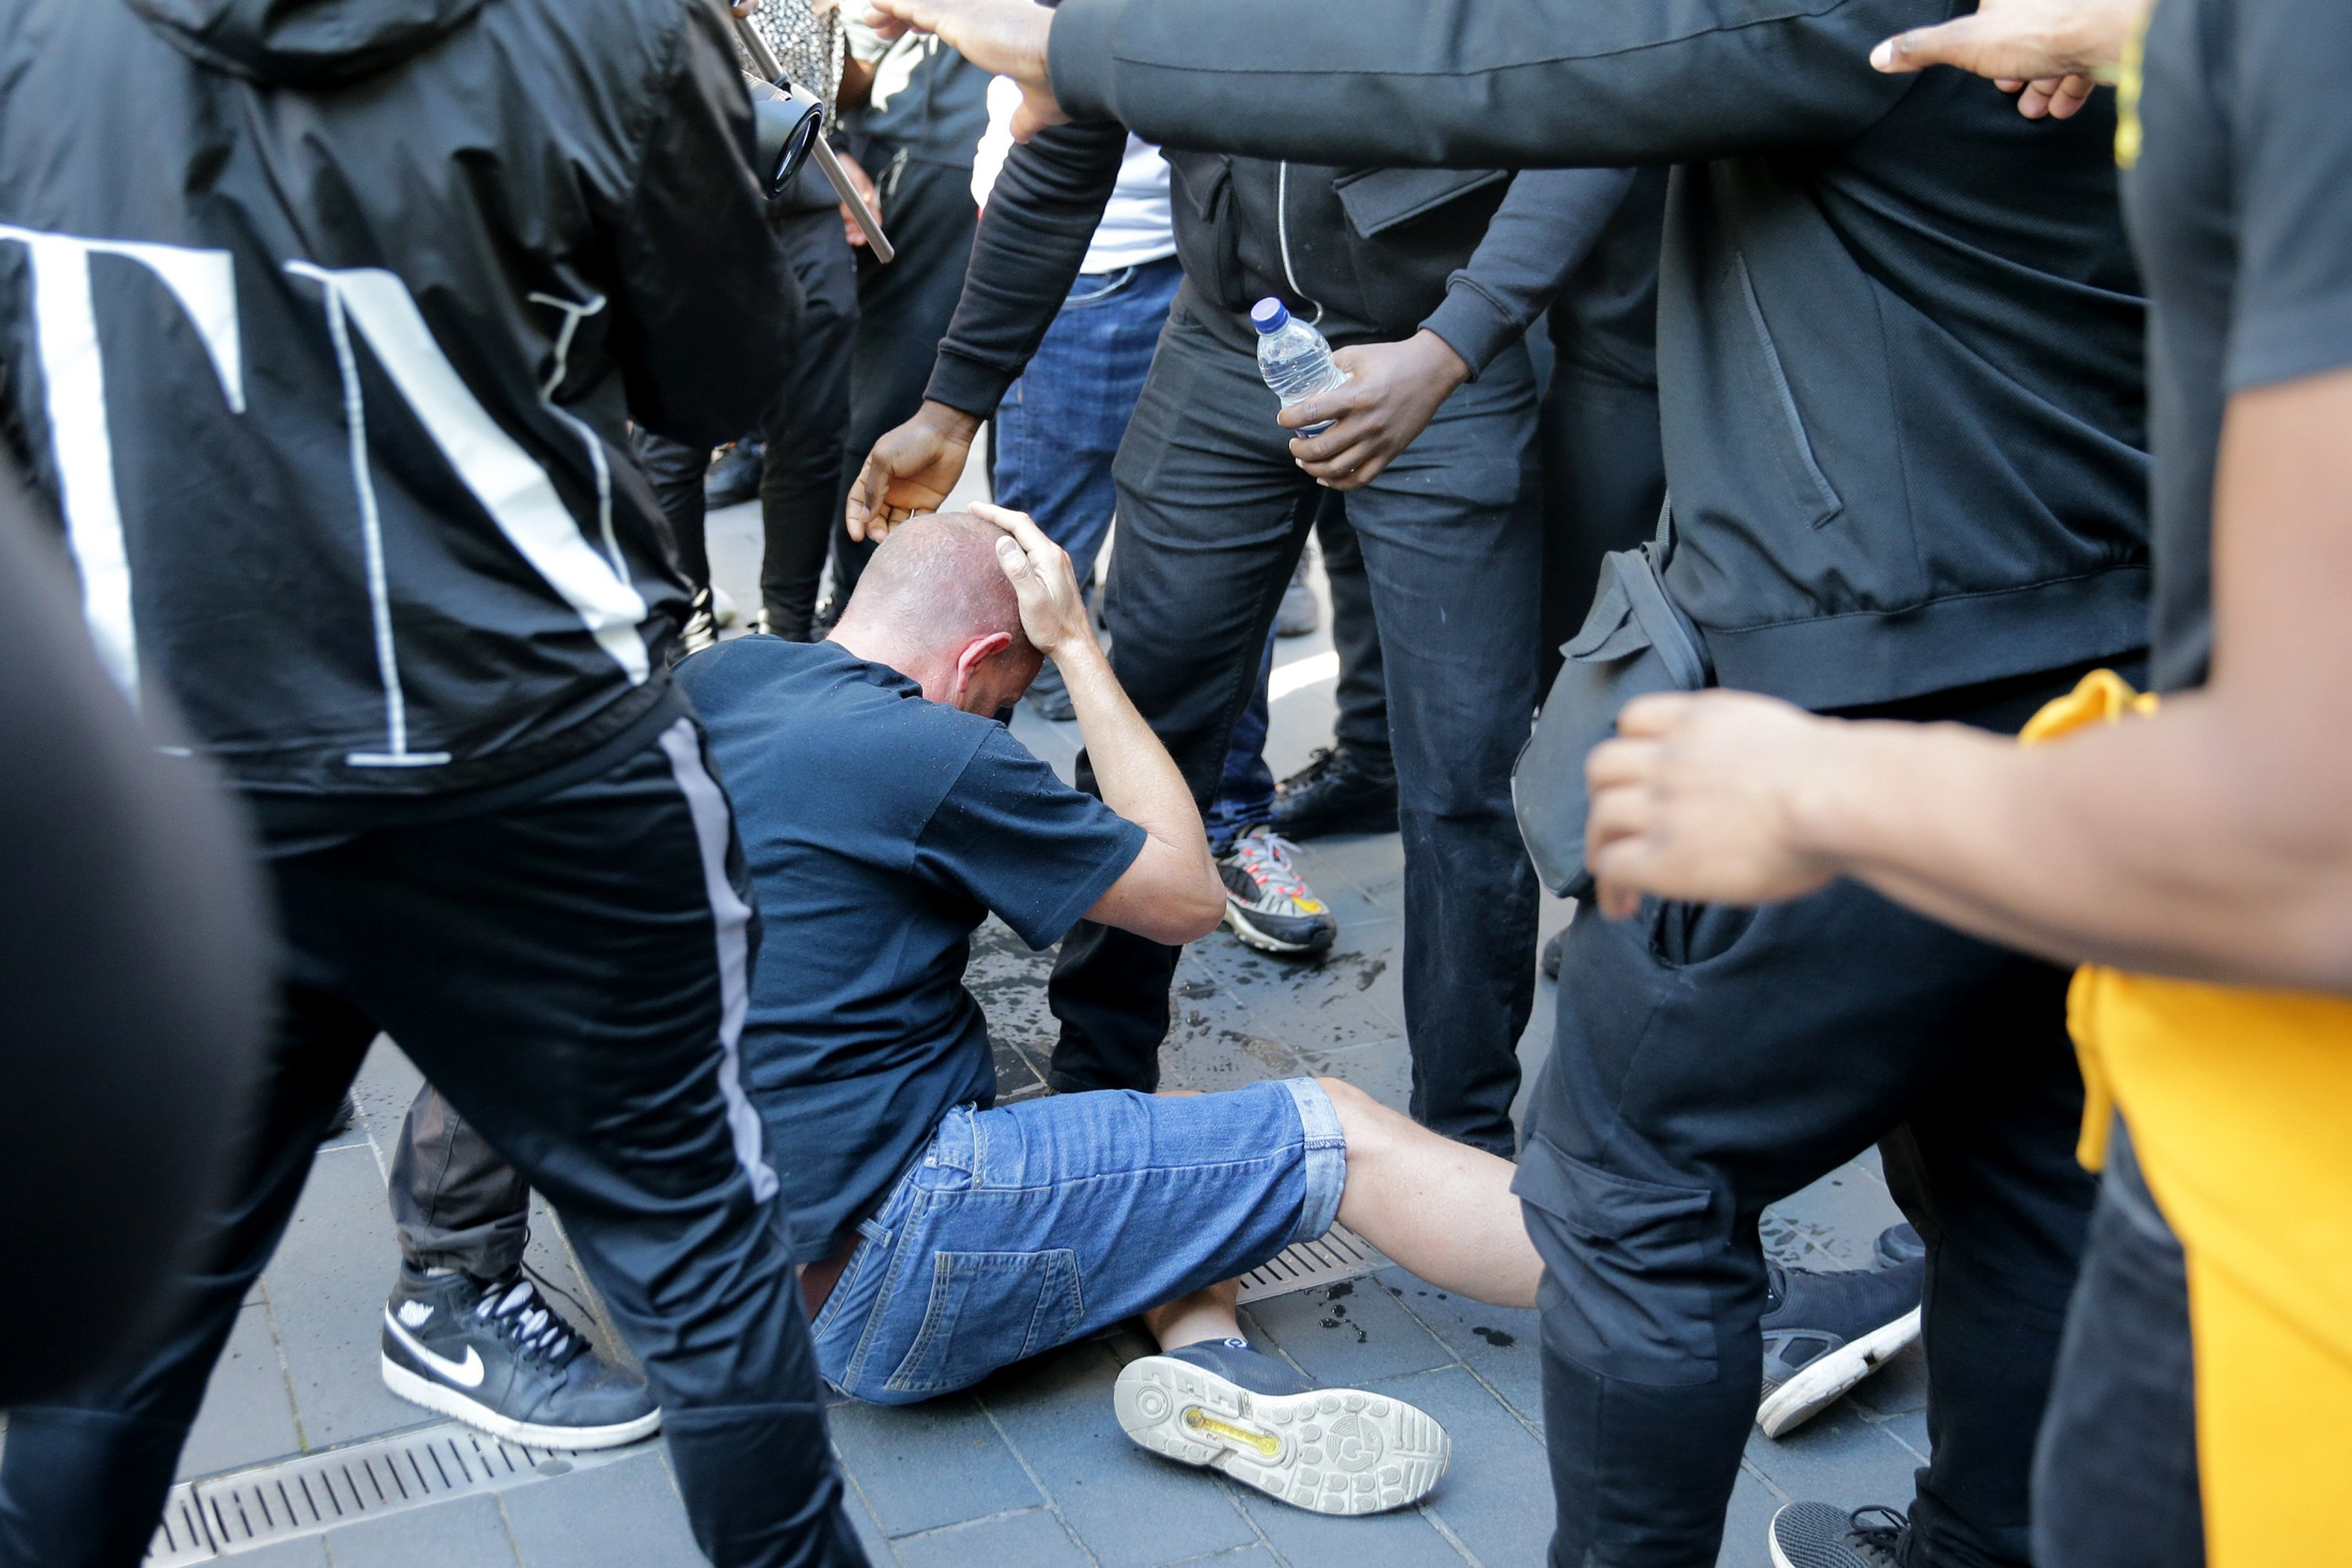 A man rubs his head as he sits on the ground after a group of men carried him away after he was allegedly attacked by some of the crowd of protesters on the Southbank near Waterloo station in London on June 13, 2020.